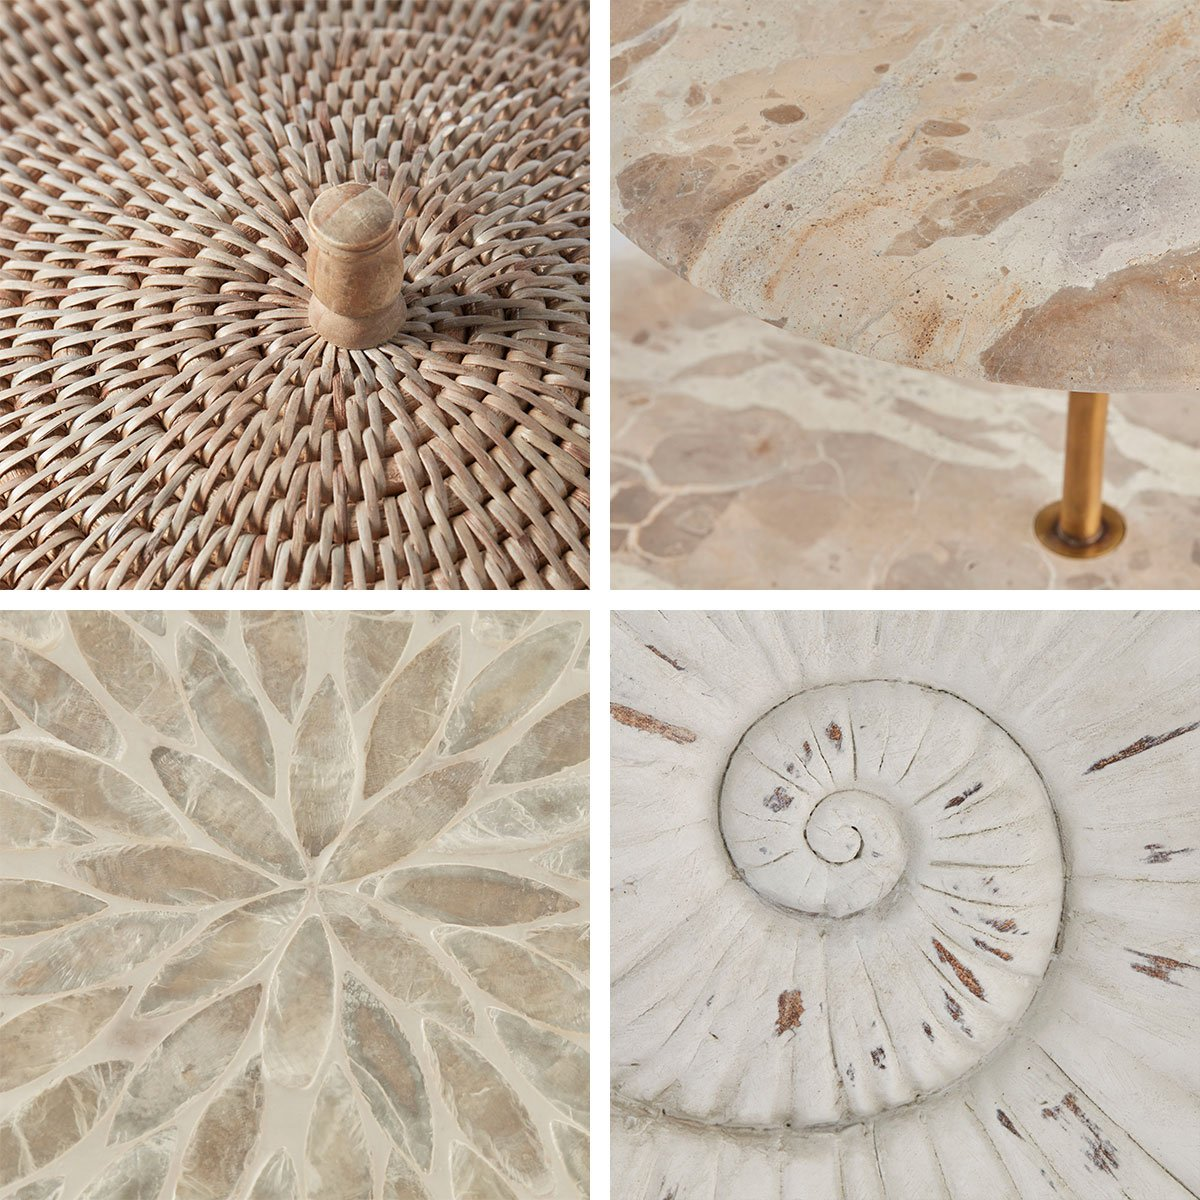 Use different materials in your home decorations - Lene Bjerre Design